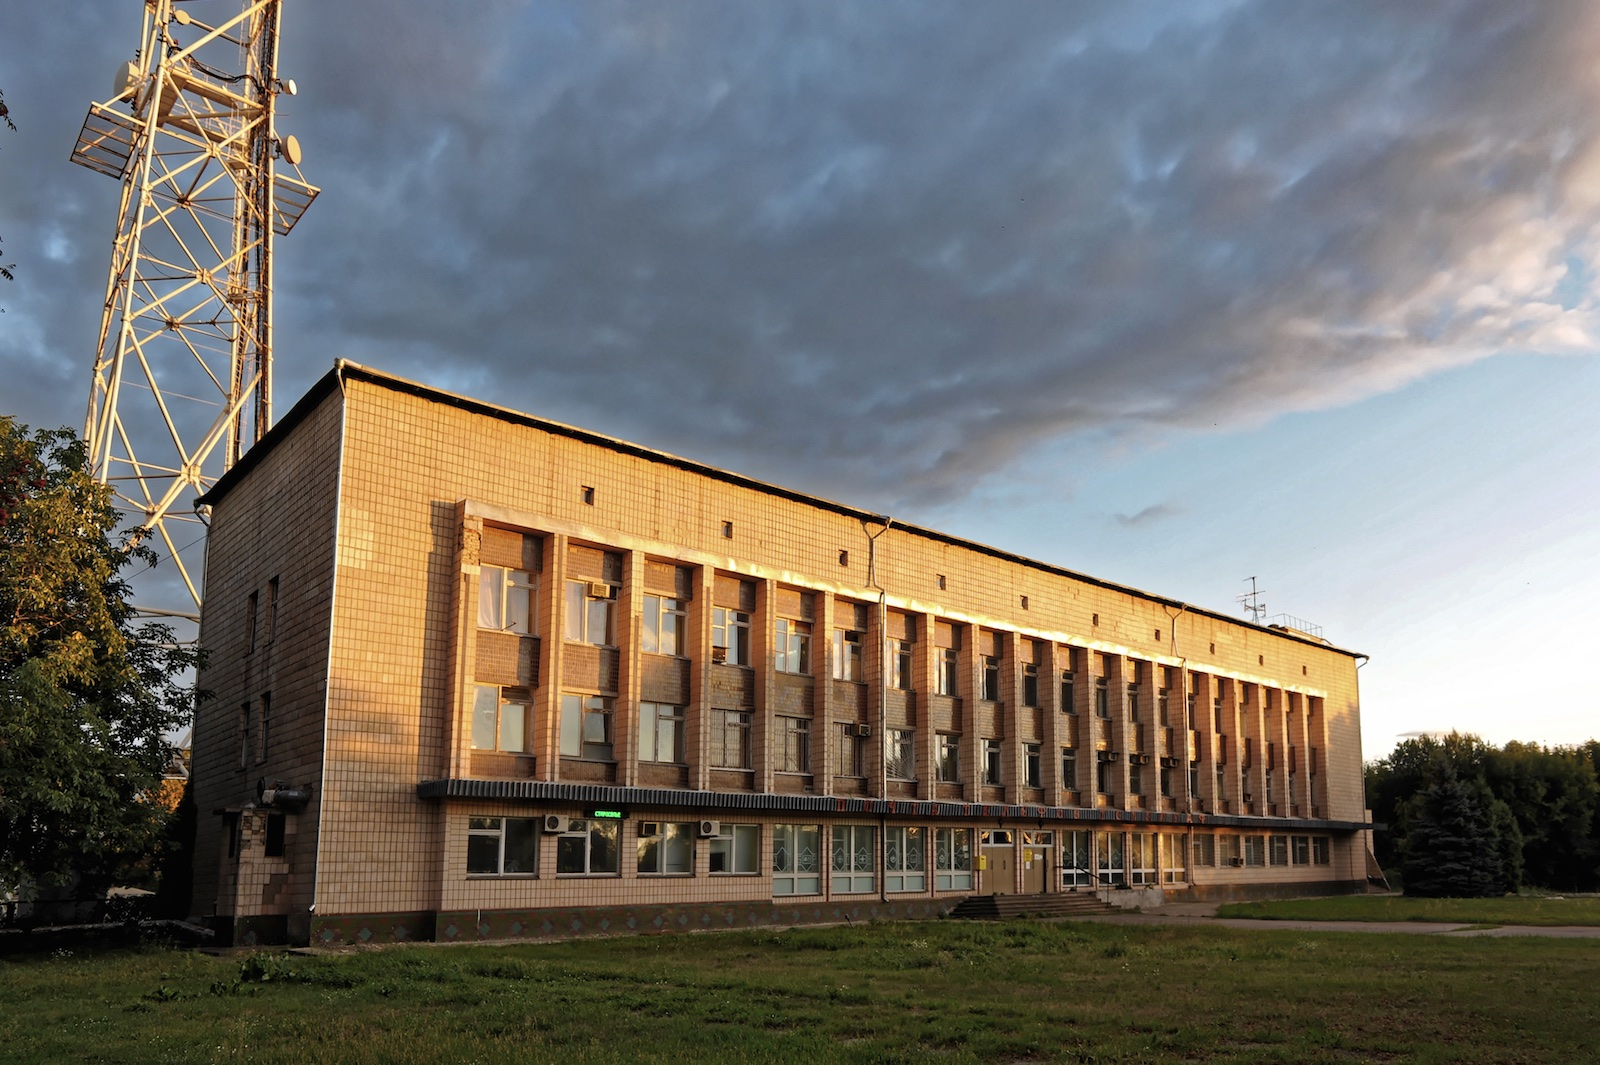 Clouds gather above an imposing 4 storey concrete building next to a transmission antenna. A small LED dot matrix board is just visible near one corner at floor level.